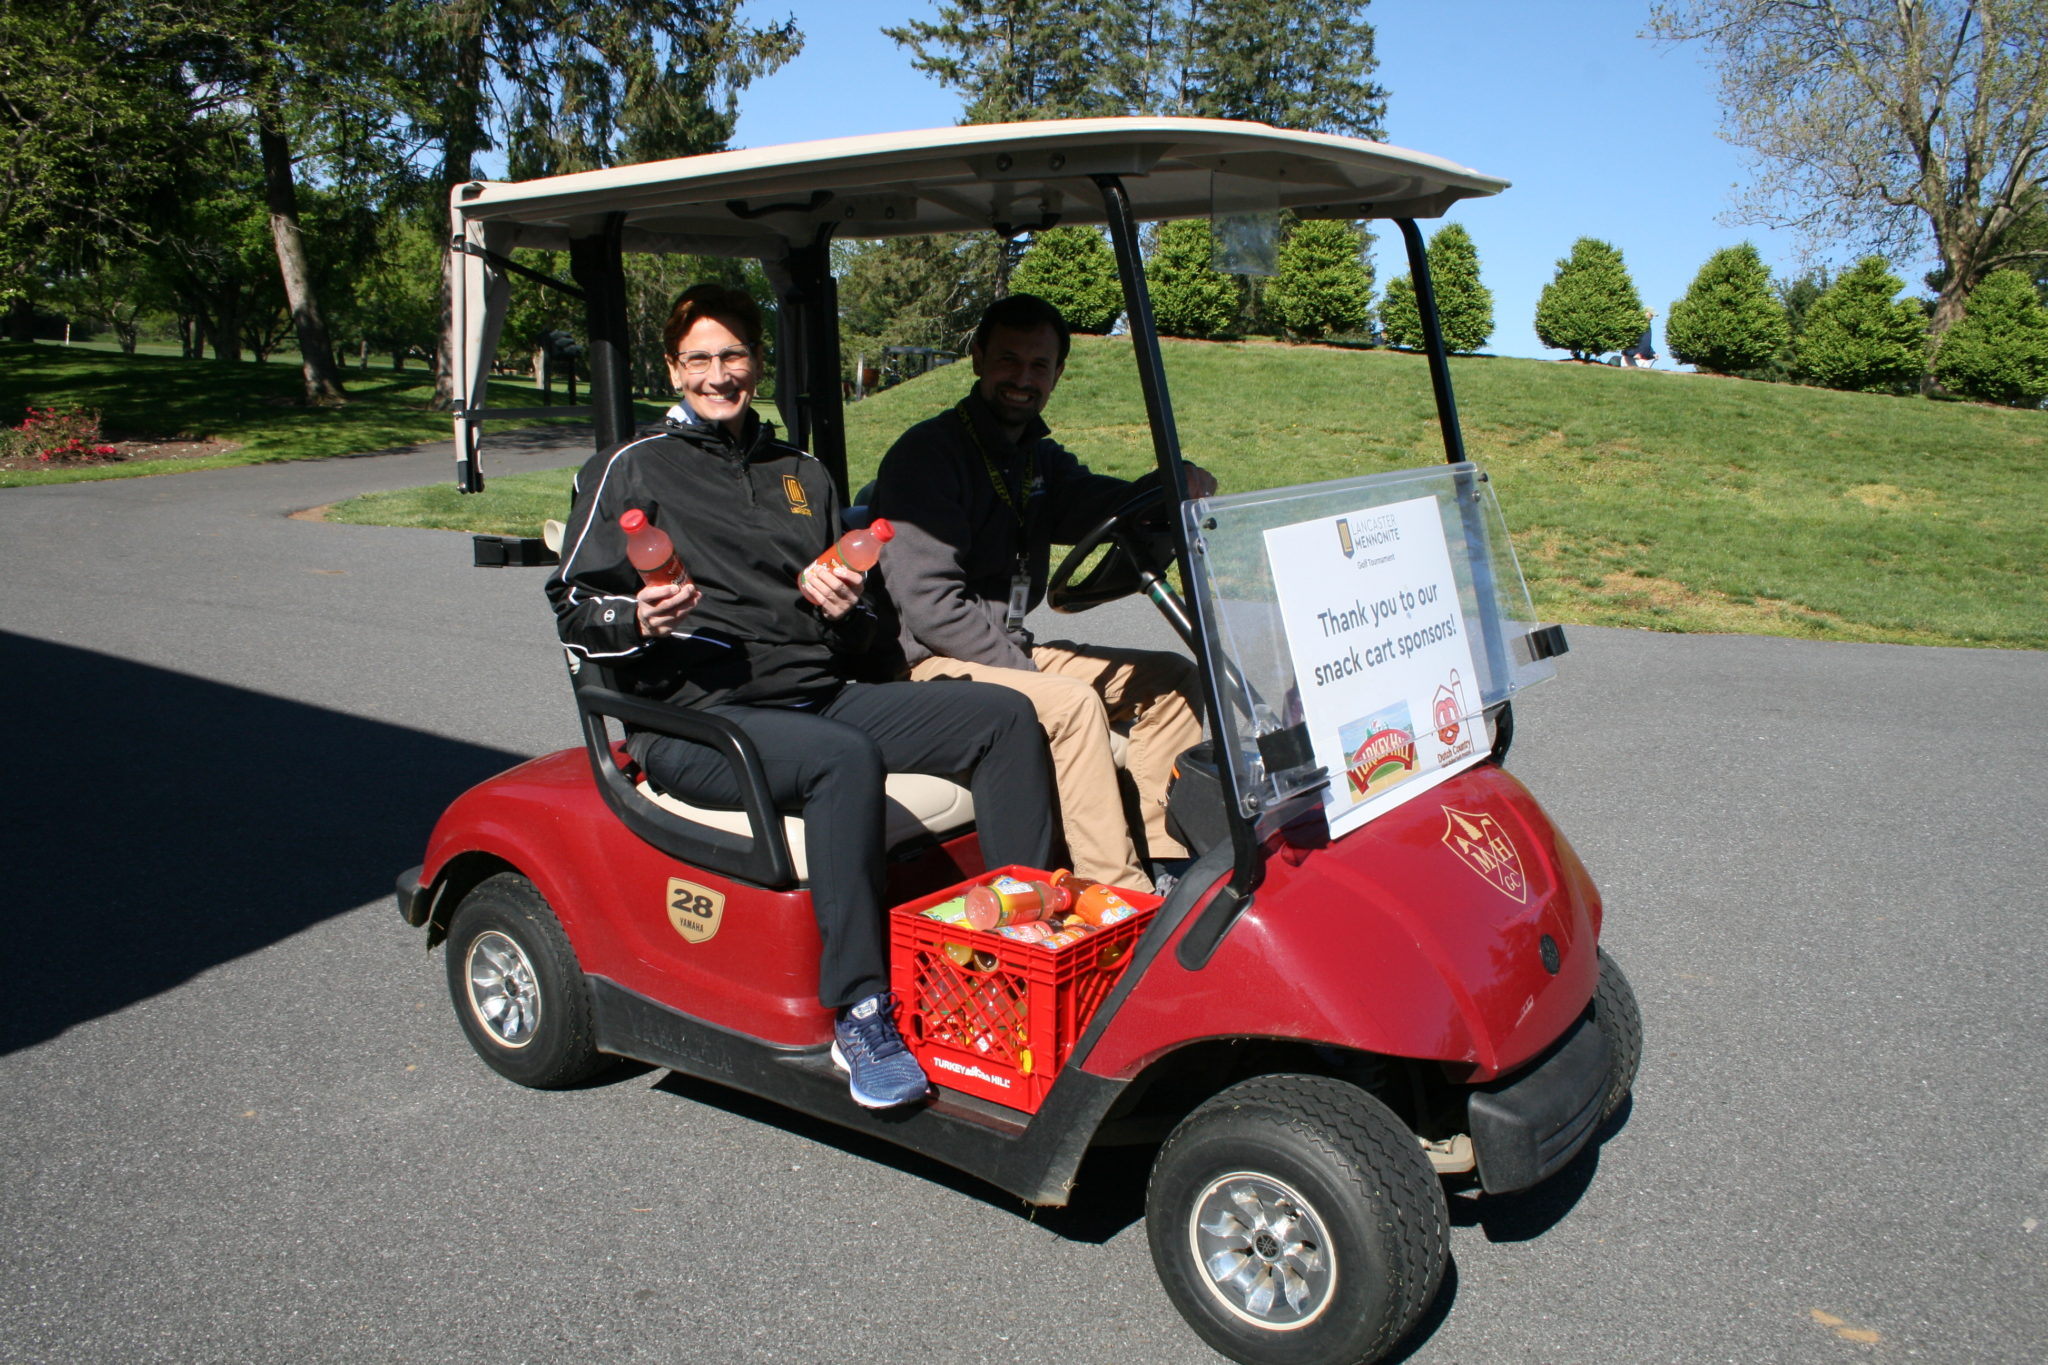 Dr. T & jon heinly handing out refreshments at the golf tournament